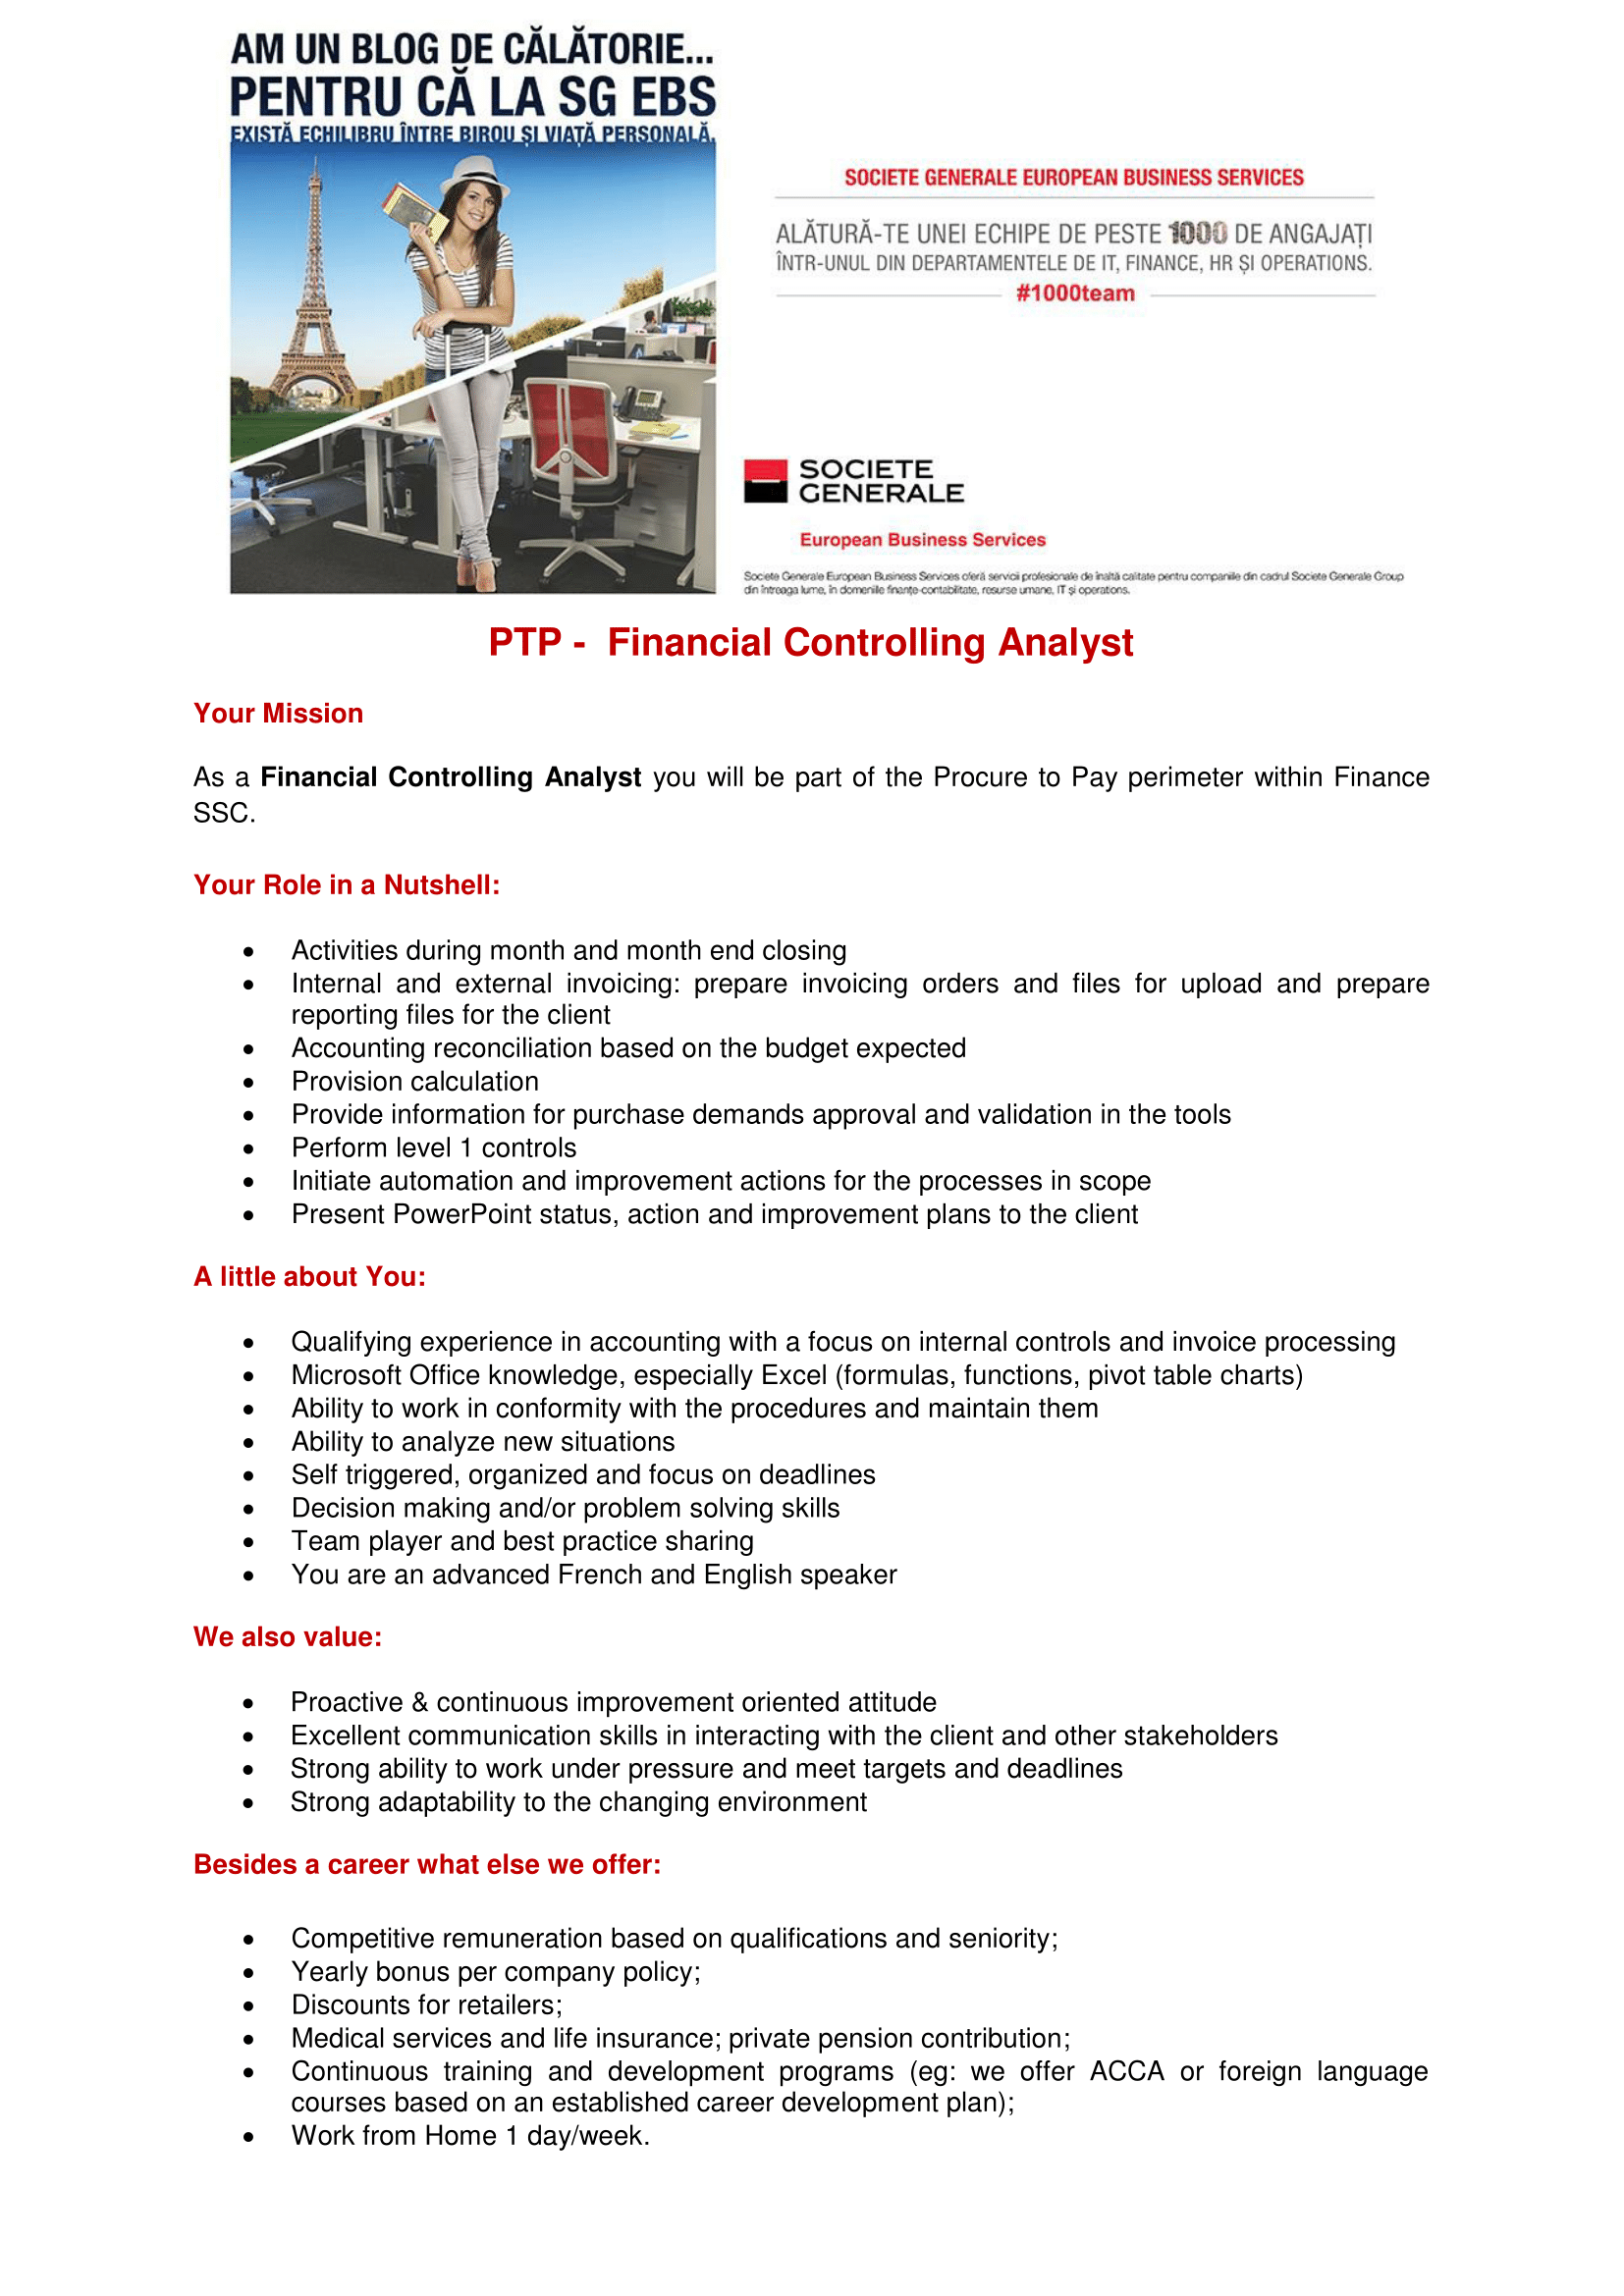 SG EBS - Financial Controlling Analyst-1